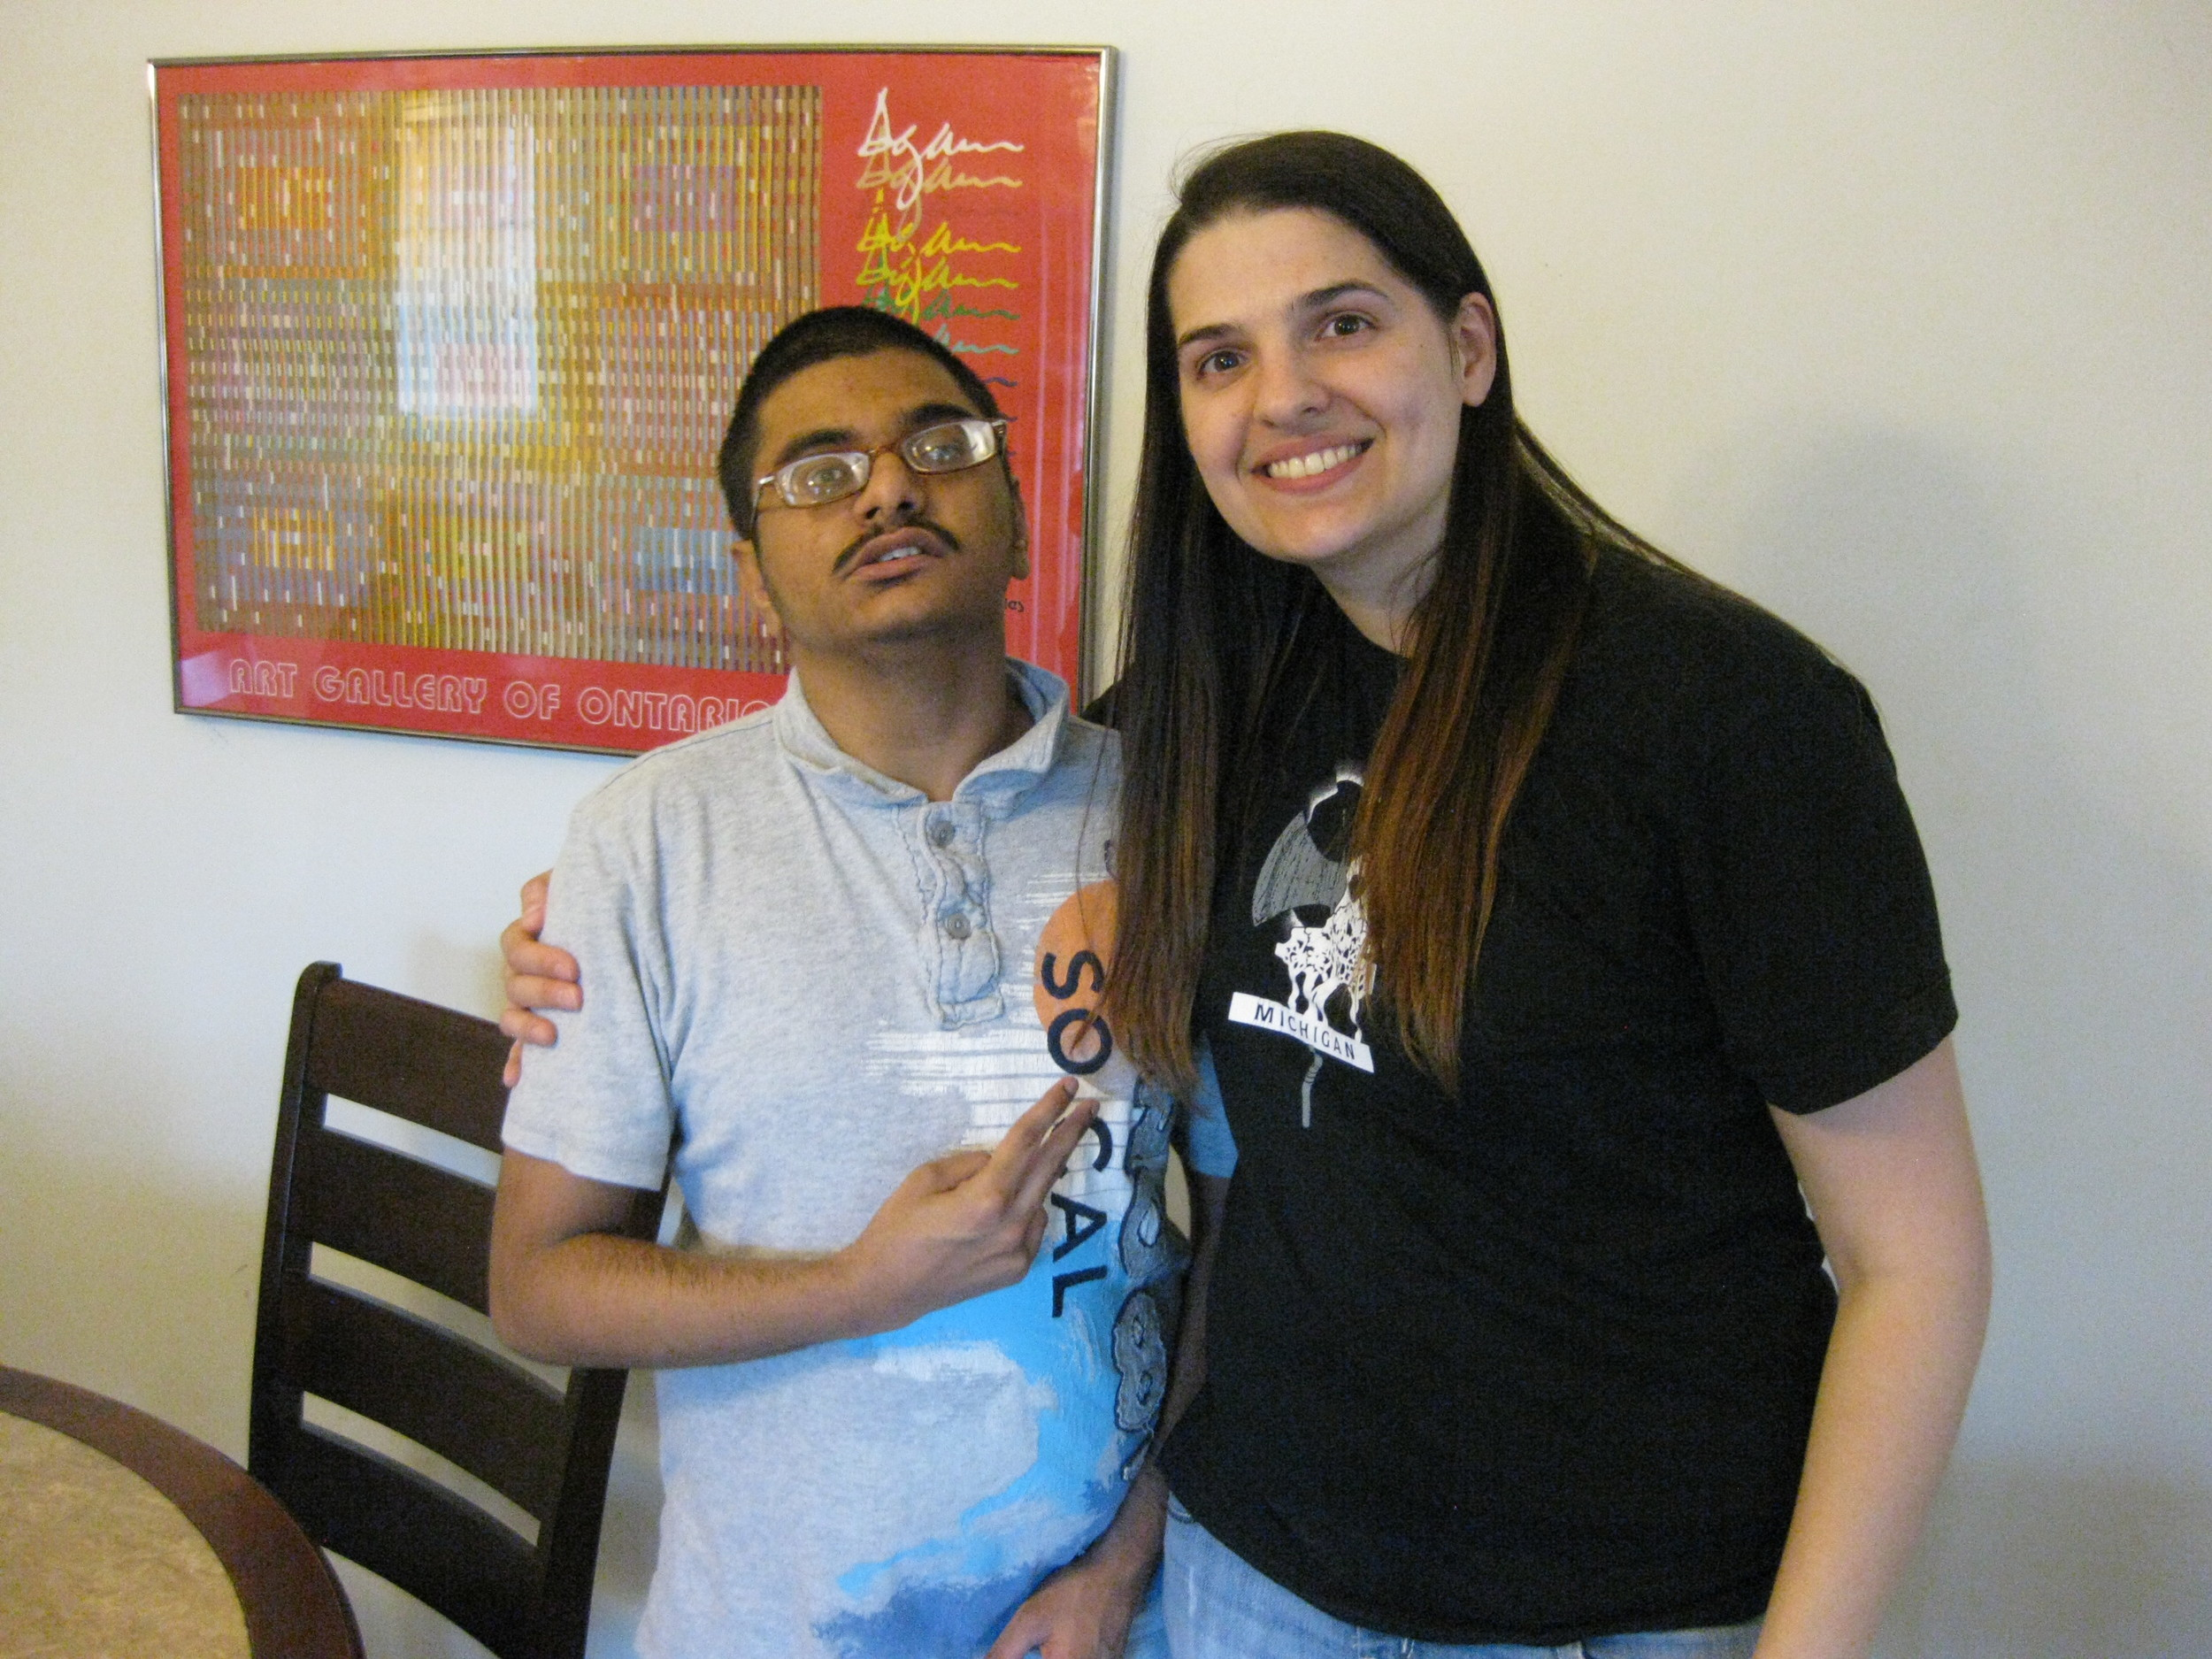 Keyur and Rosemary spending time together at his home in Farmington Hills